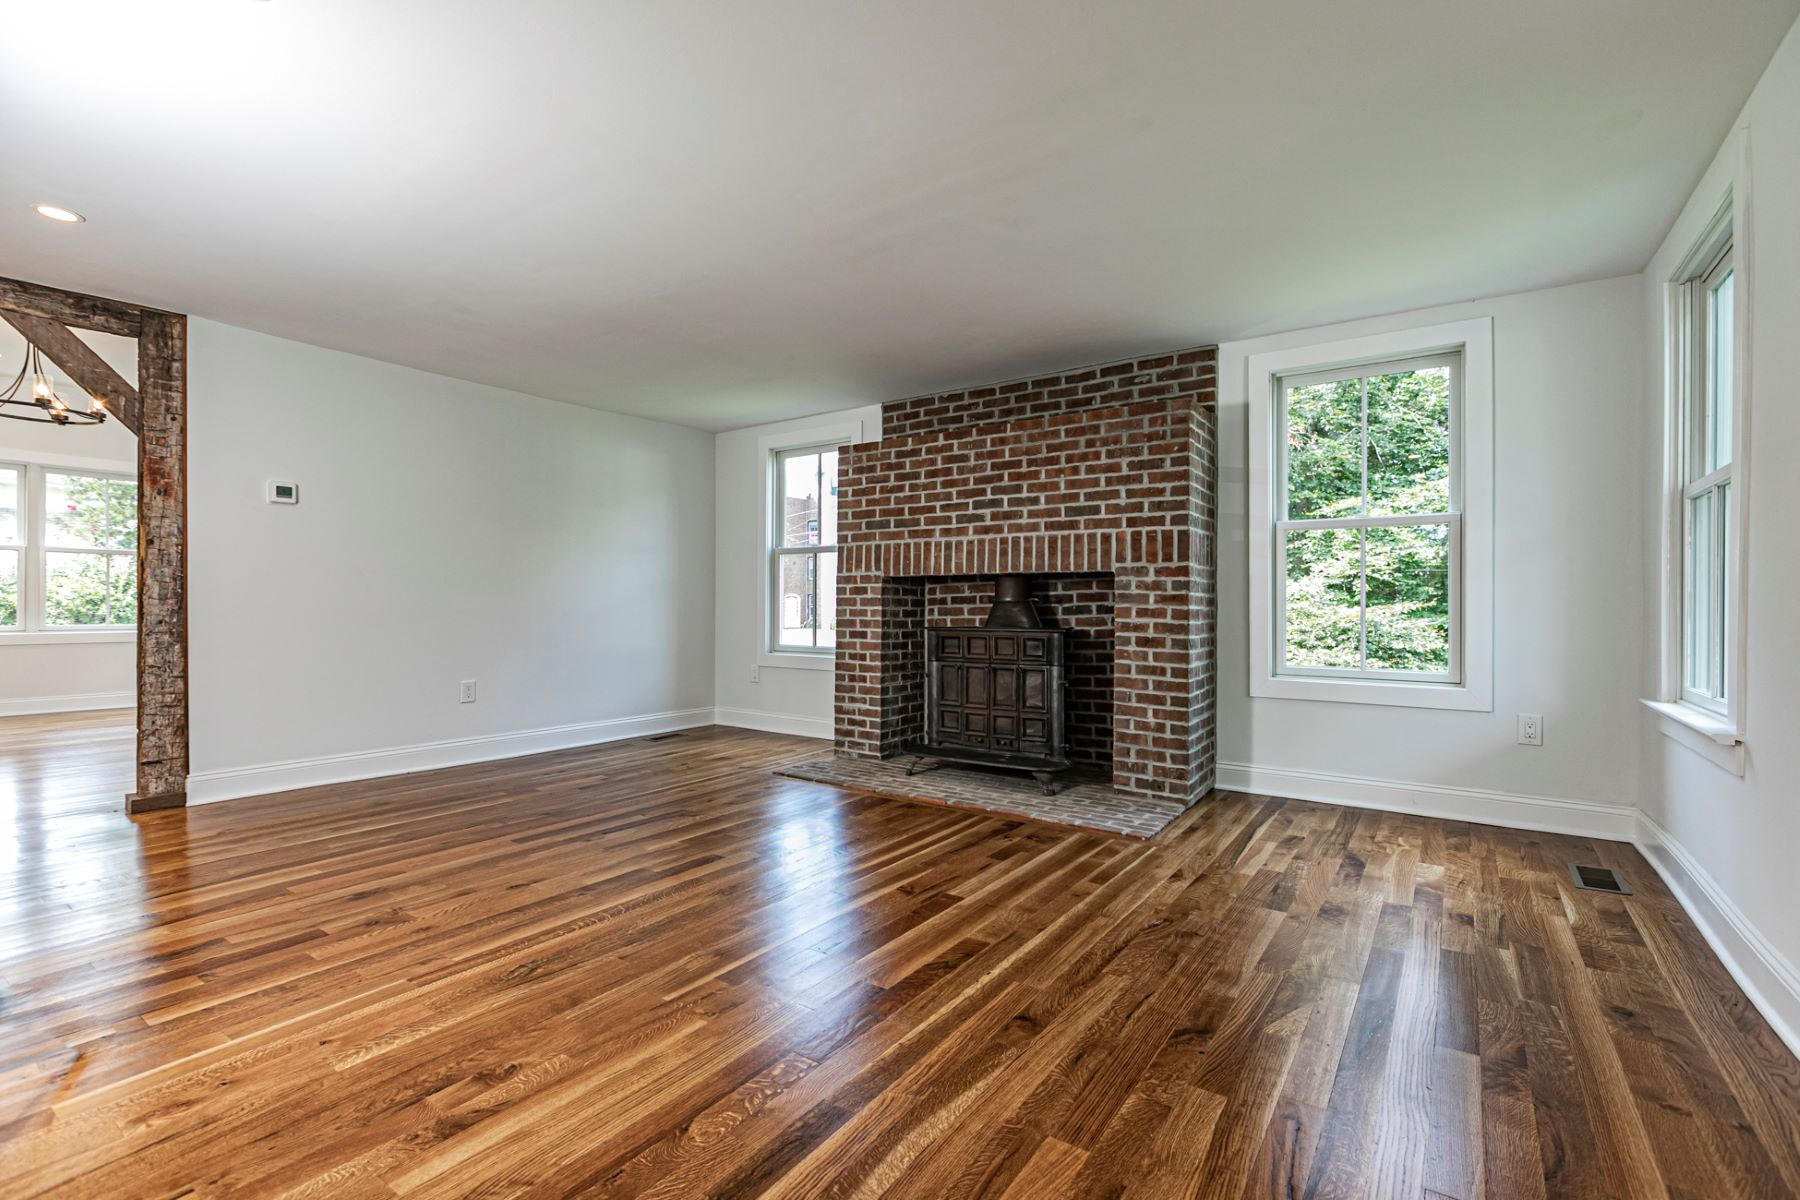 Additional photo for property listing at The Wiley Frisbie House - Completely Renovated 30 West Delaware Avenue, Pennington, New Jersey 08534 United States